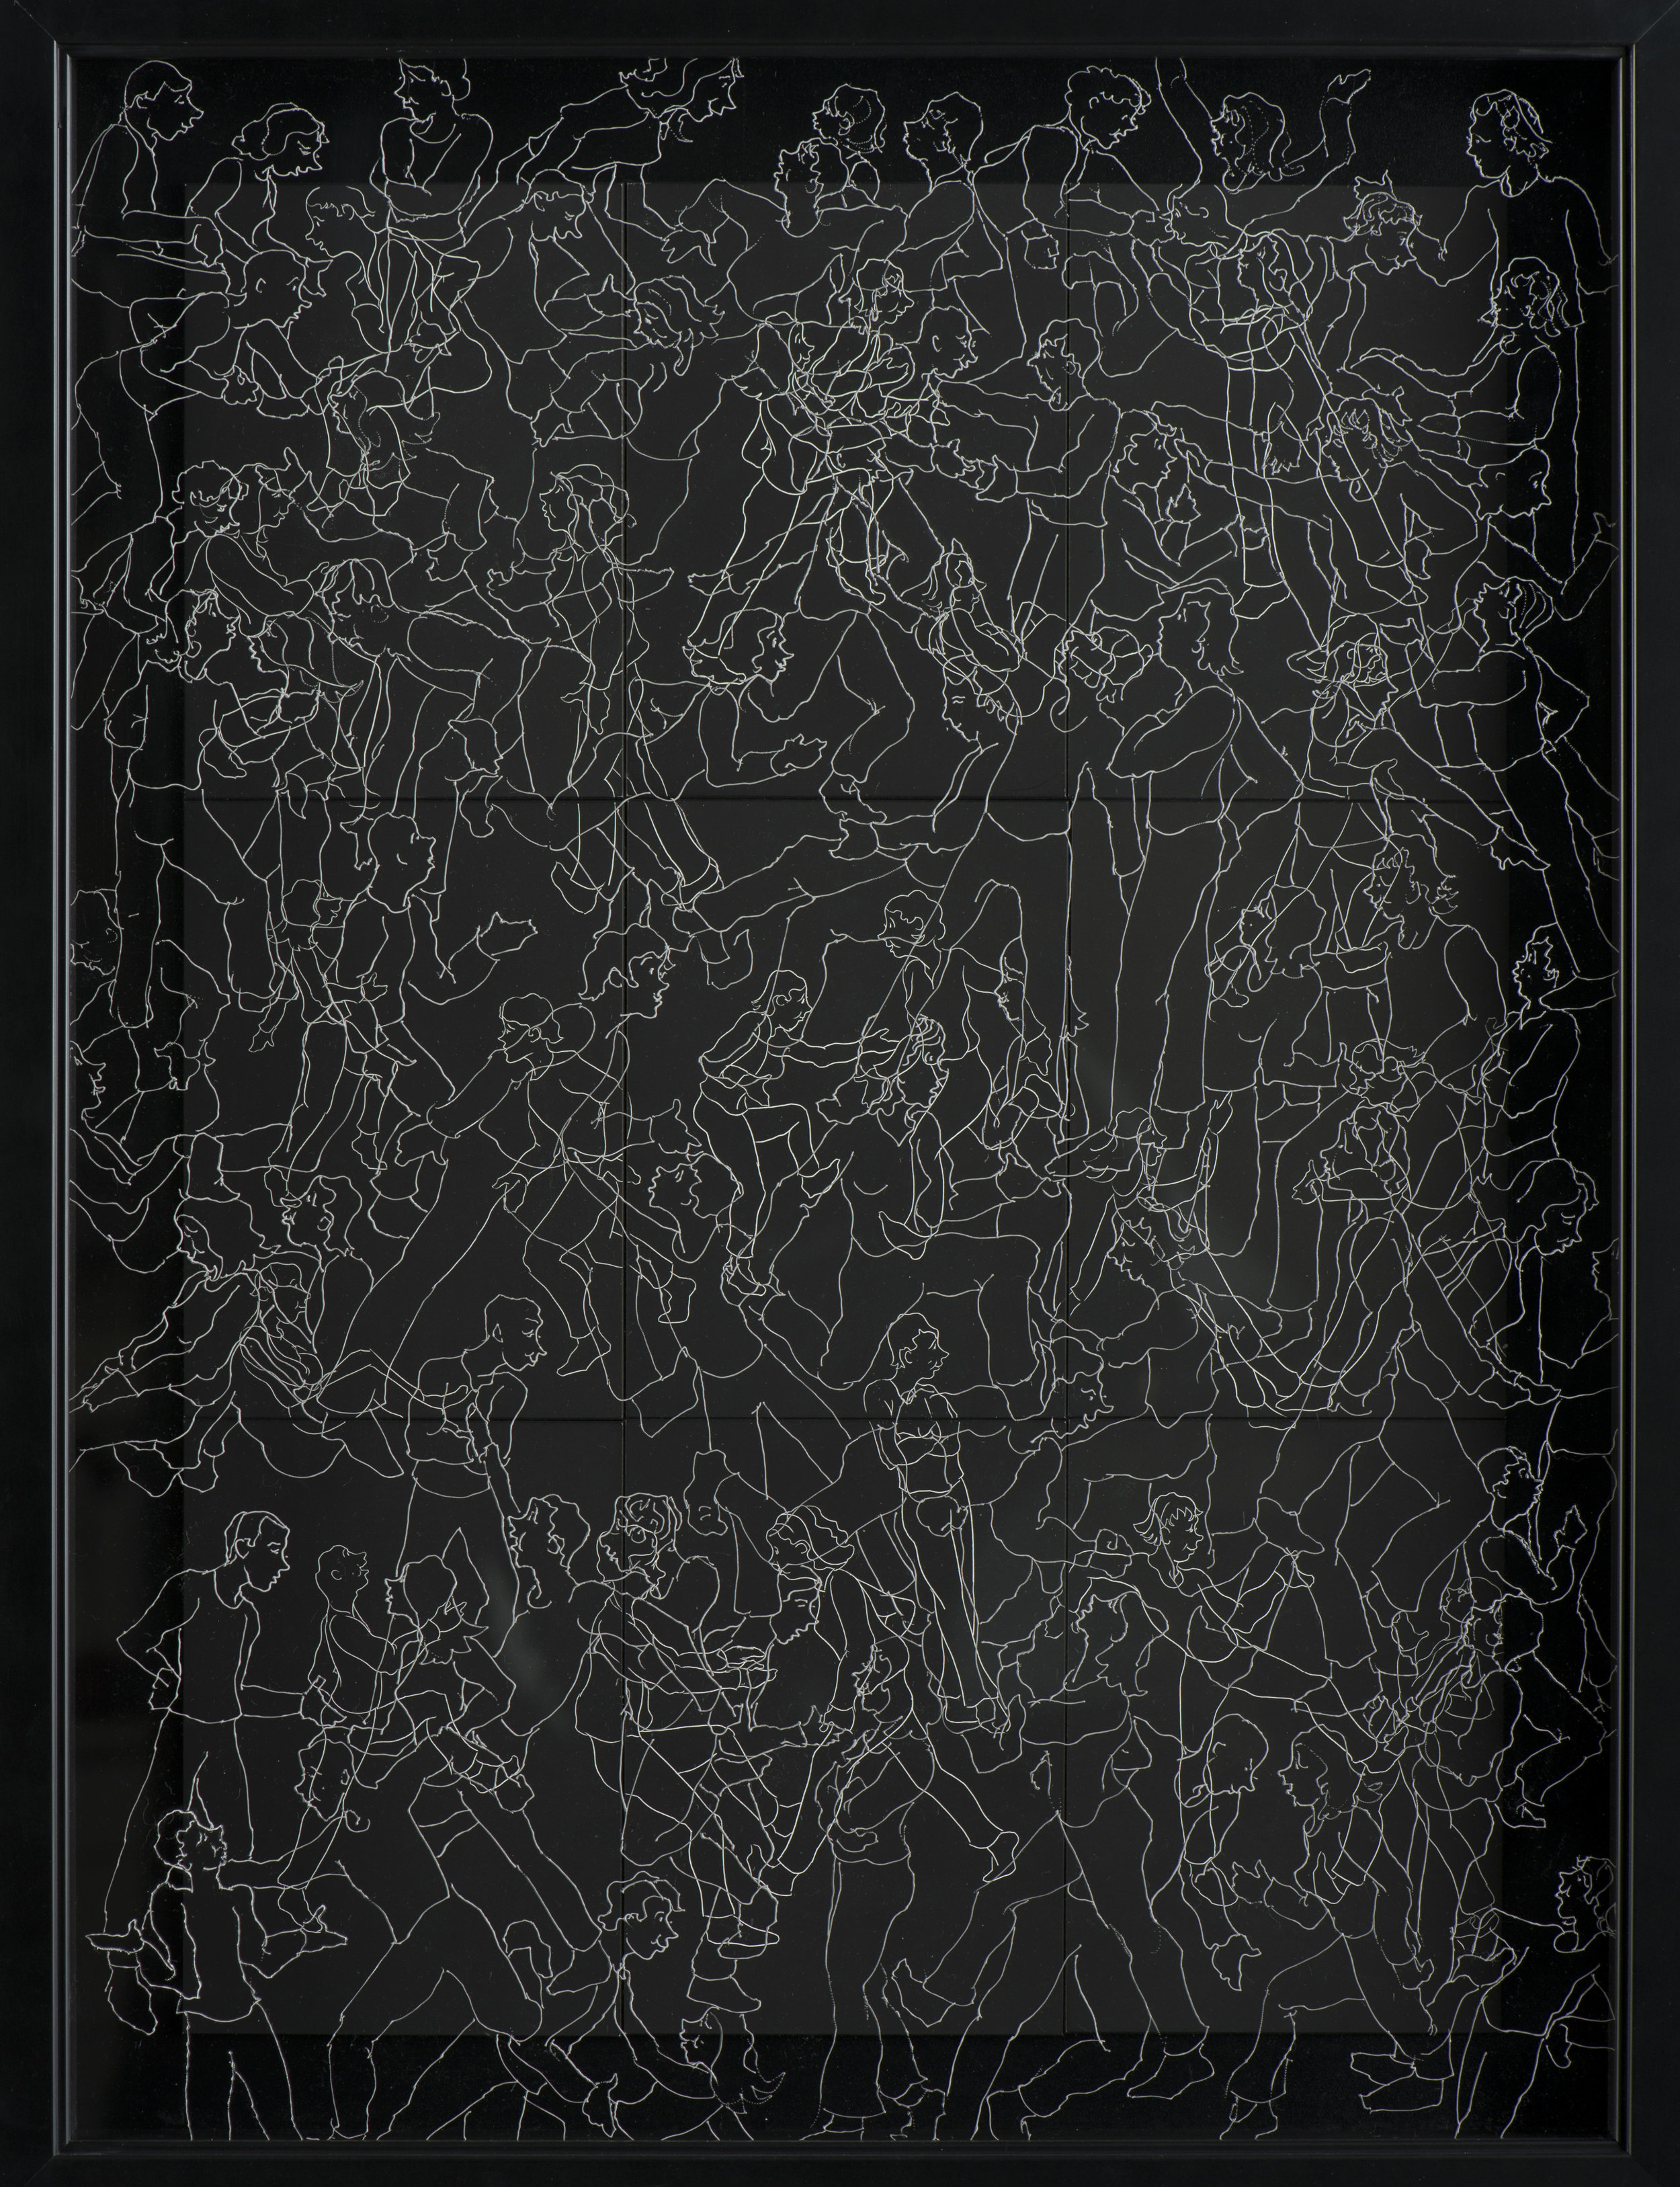 """INTERACTION 3  #3029 Black Scratchboard with Overlay of Etched Plexiglass Framed: 19"""" x 22"""" $1500.00 Studio"""